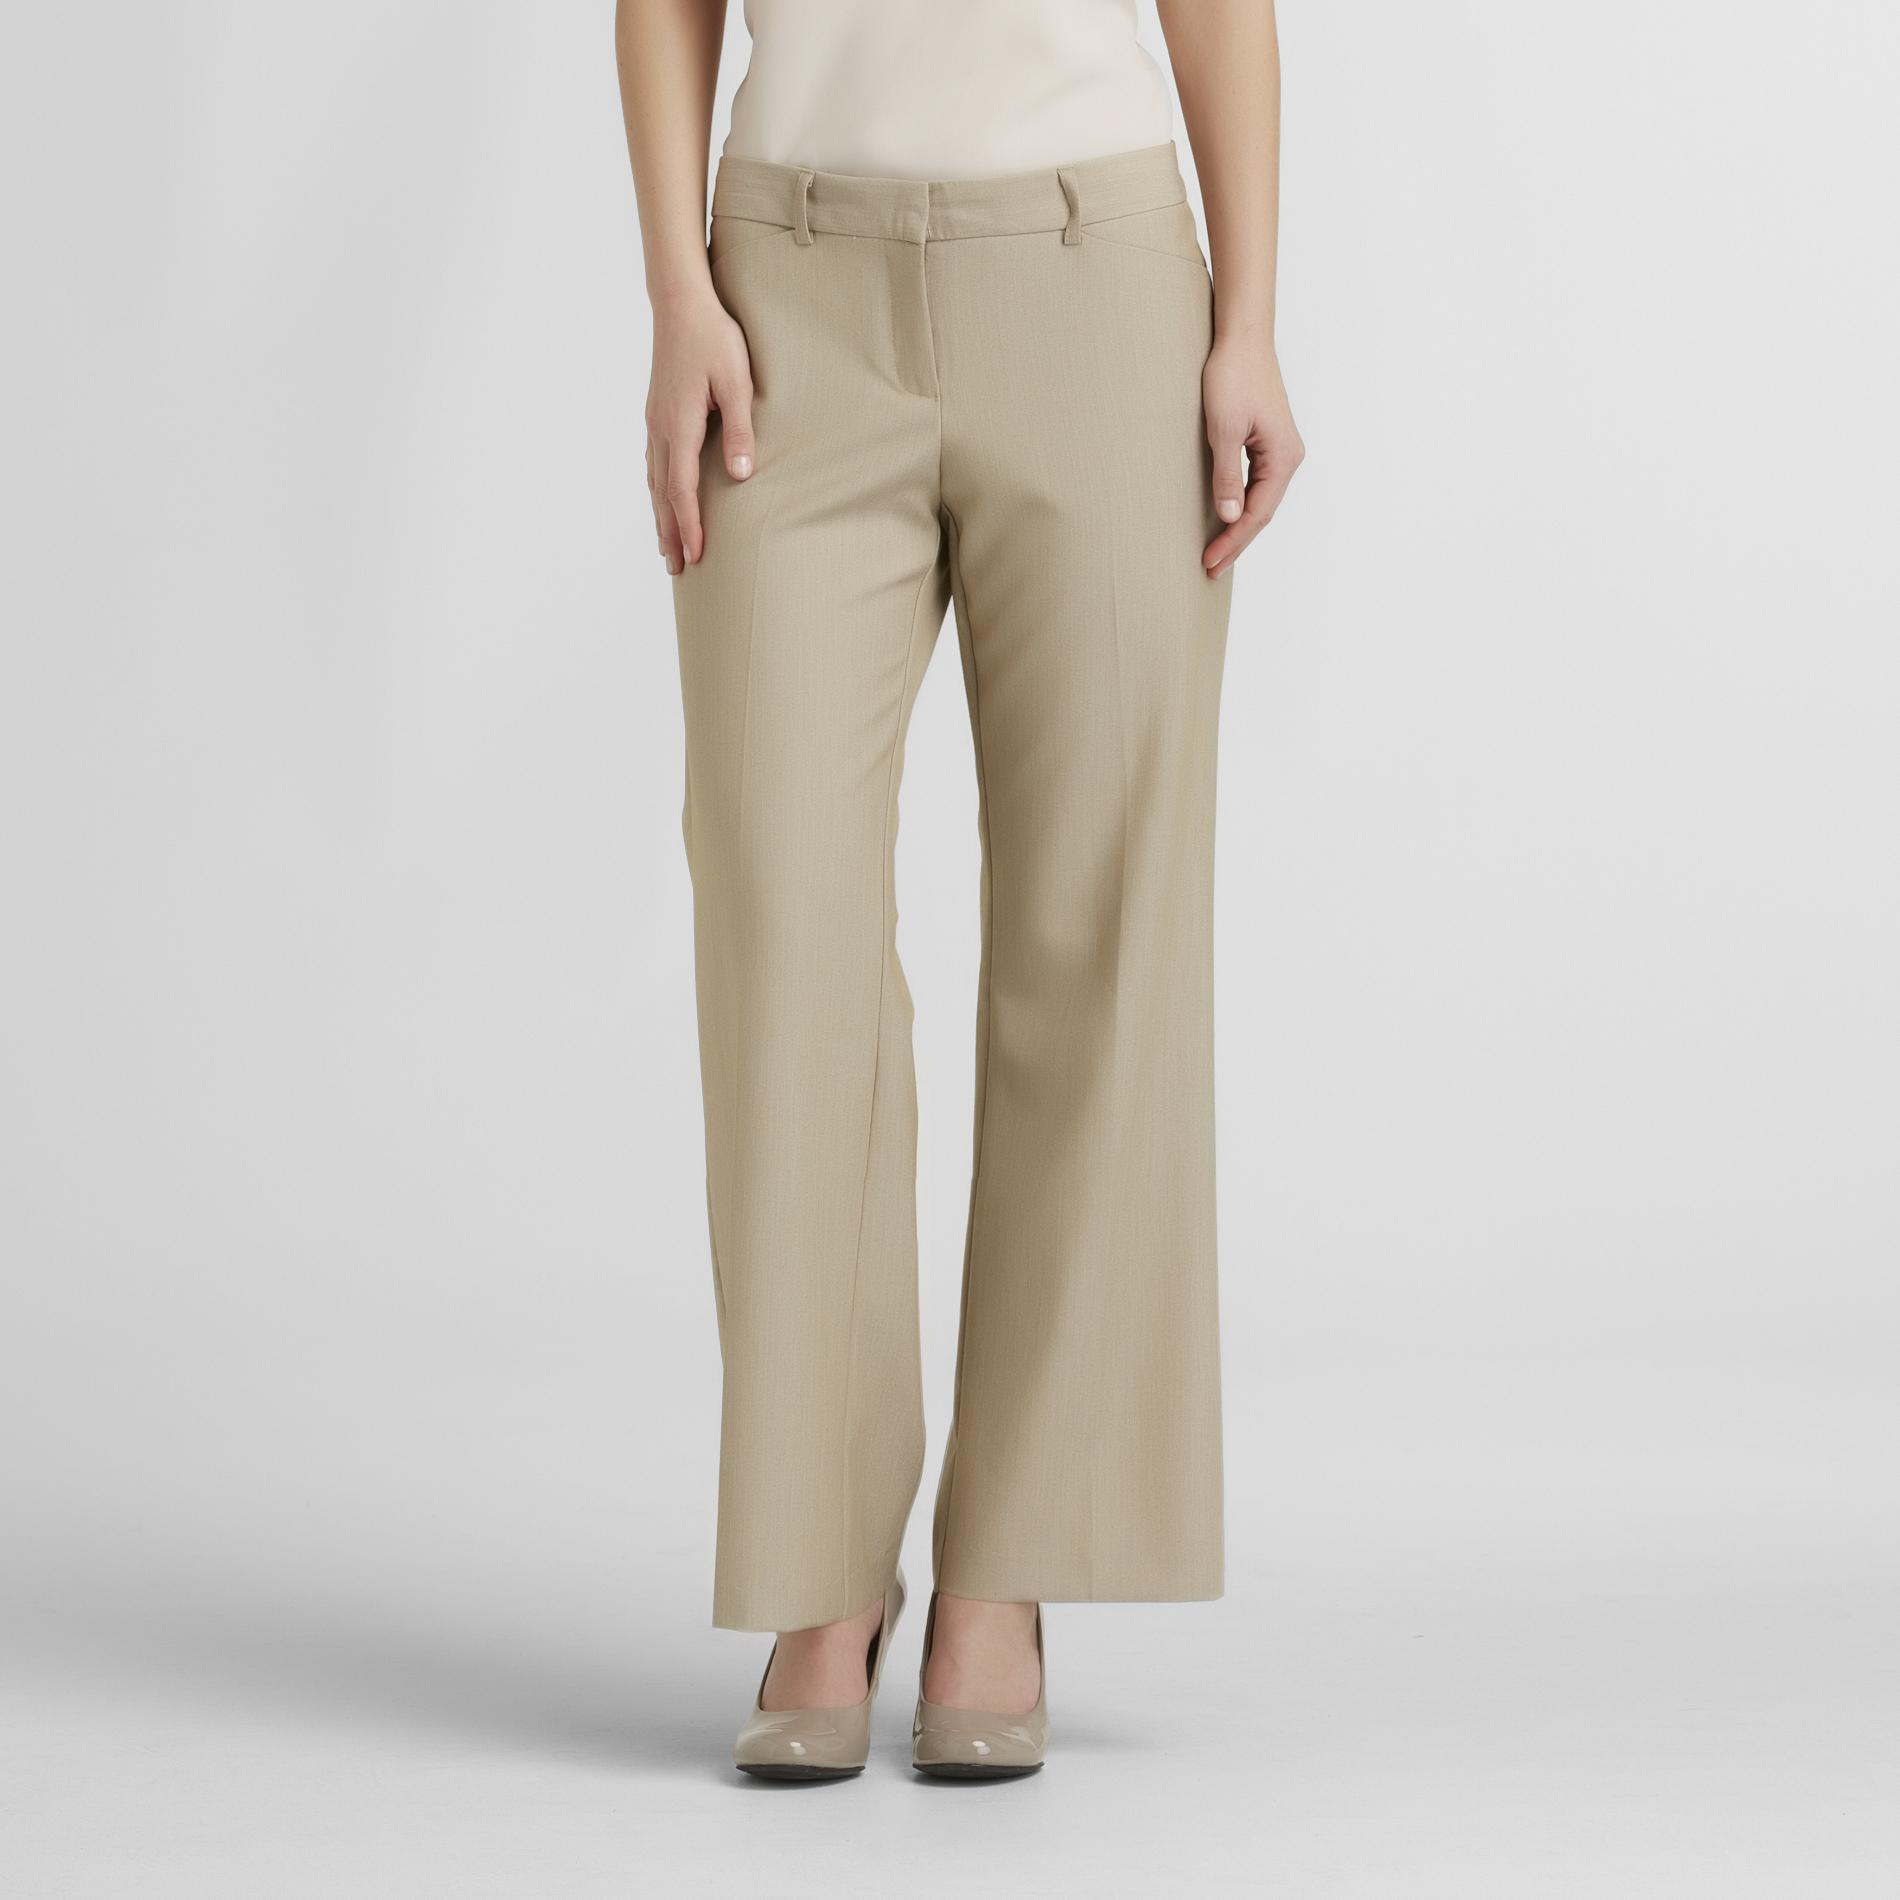 Metaphor Women's Dress Pants - Fiona Fit at Sears.com